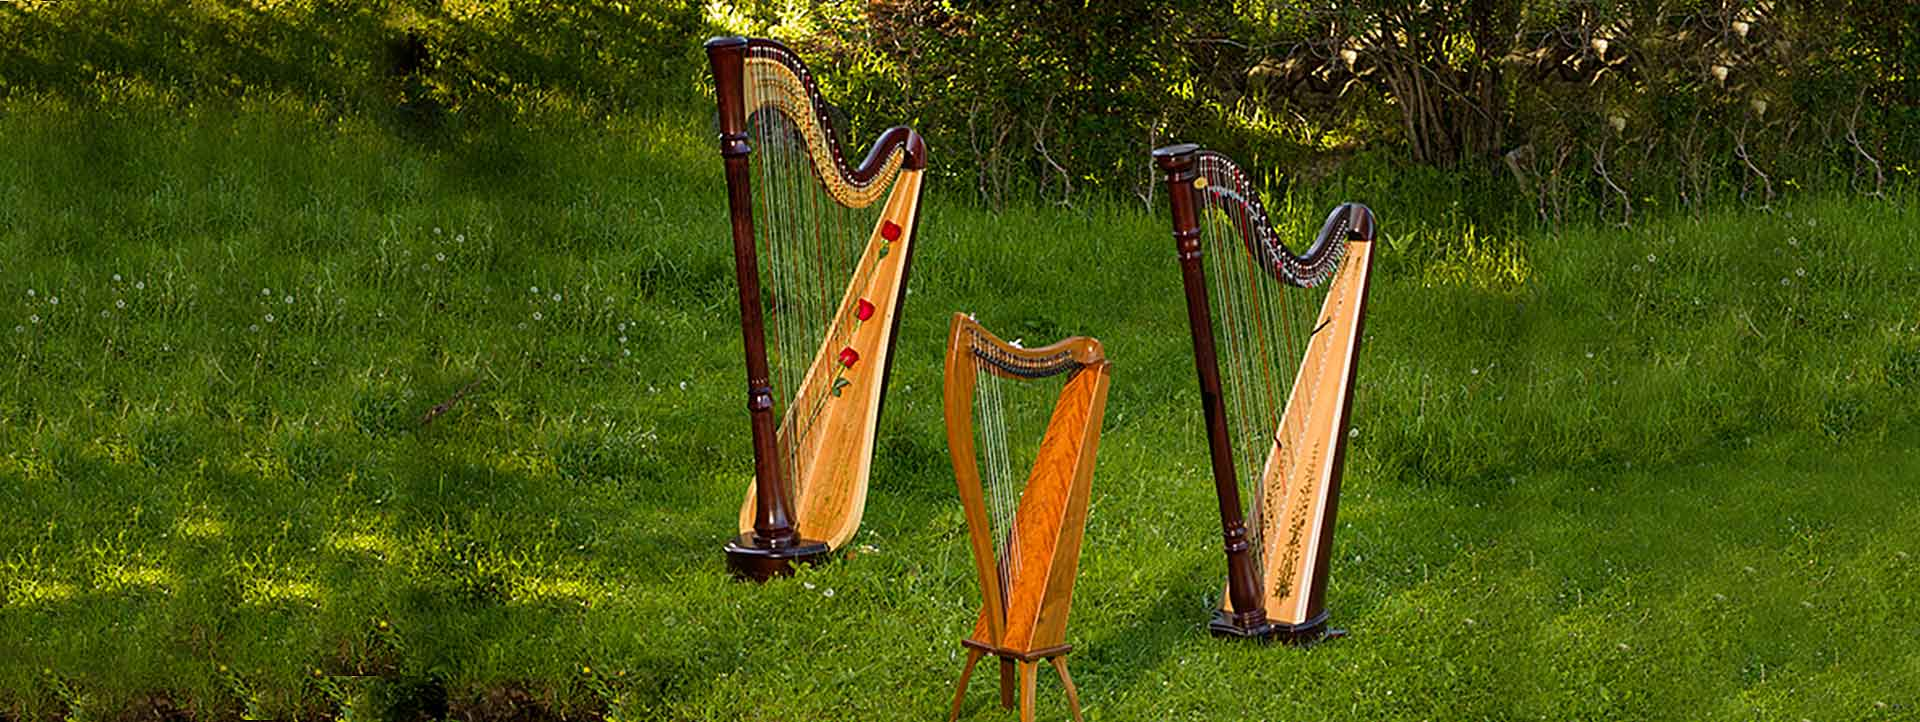 Vibroacoustic Harp Therapy Program